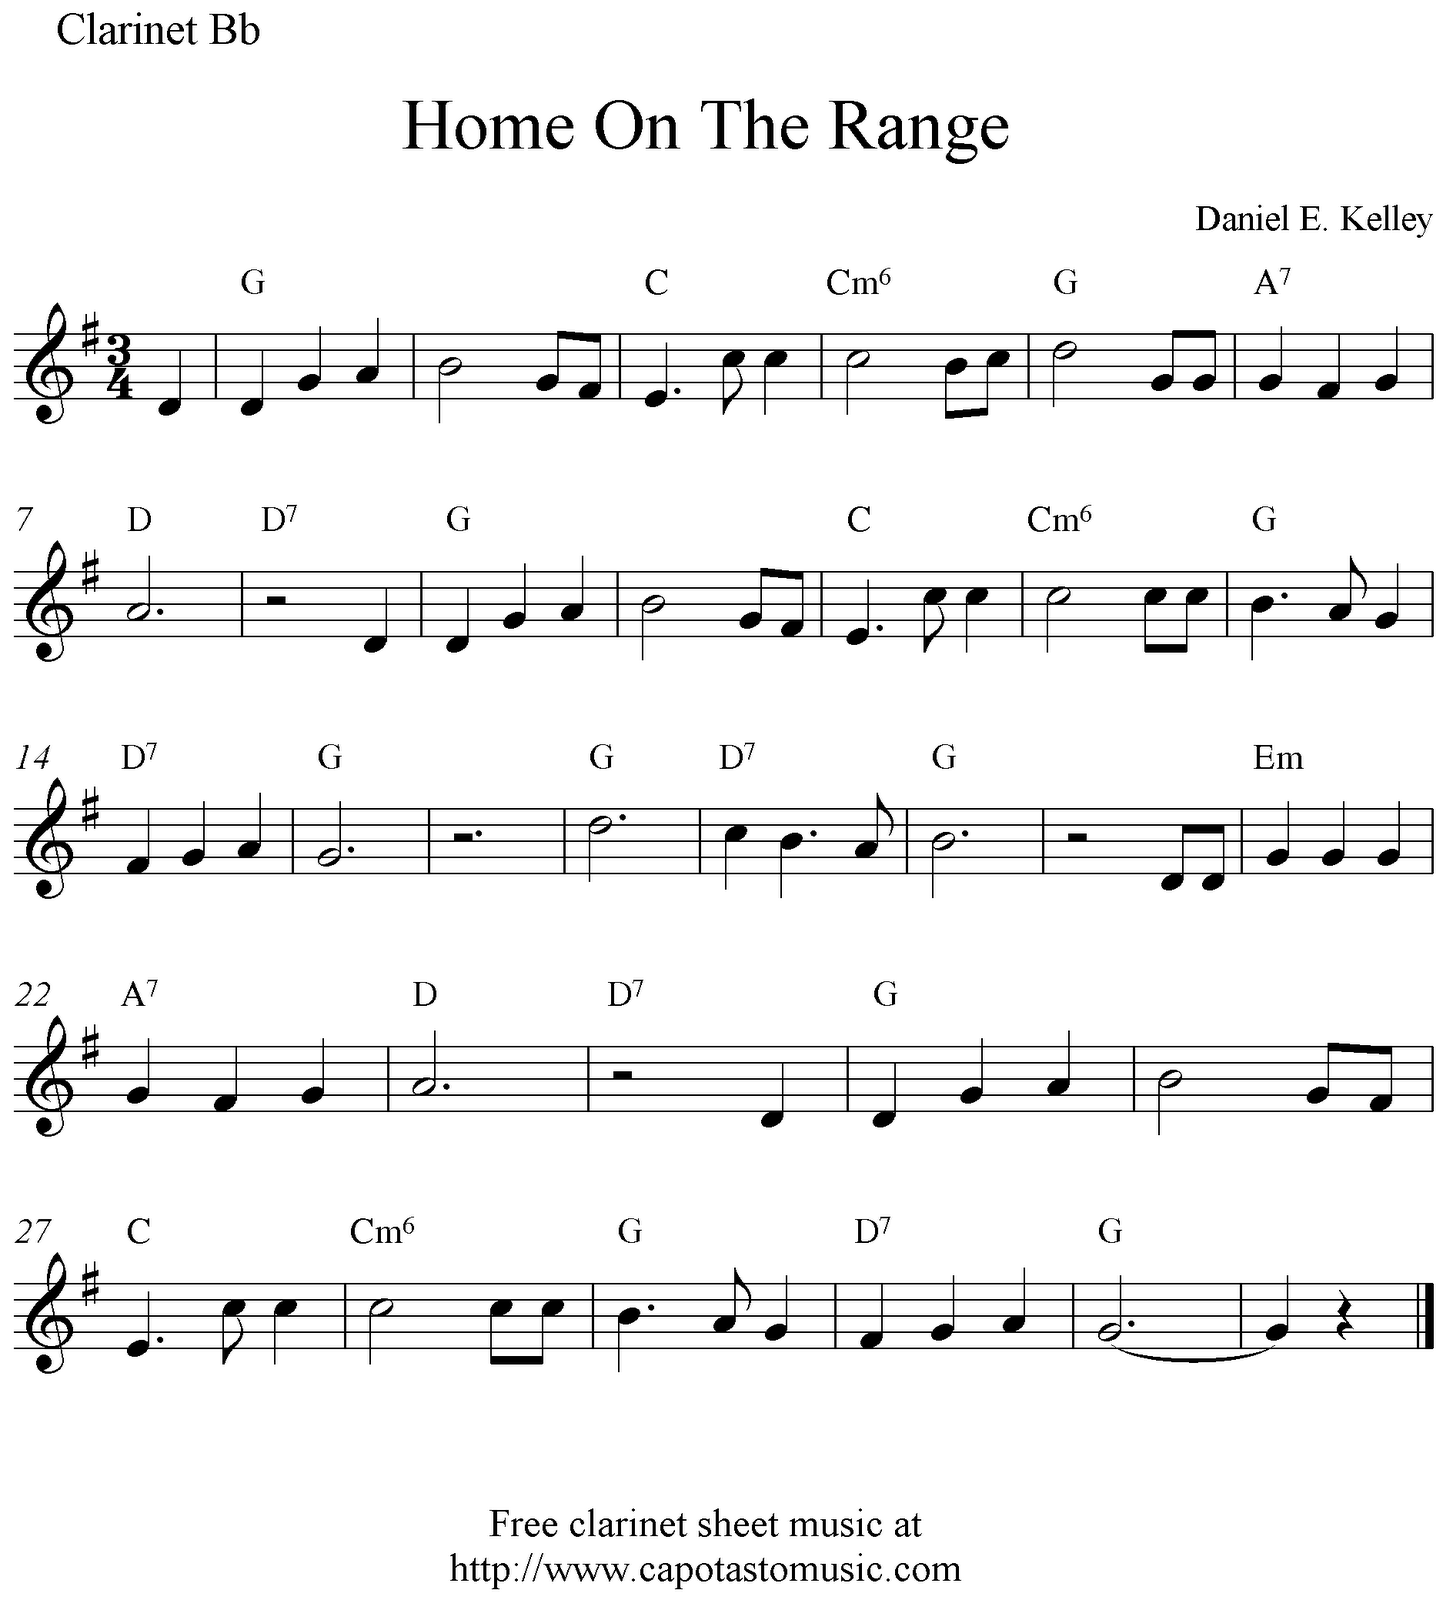 Home on the range free clarinet sheet music notes